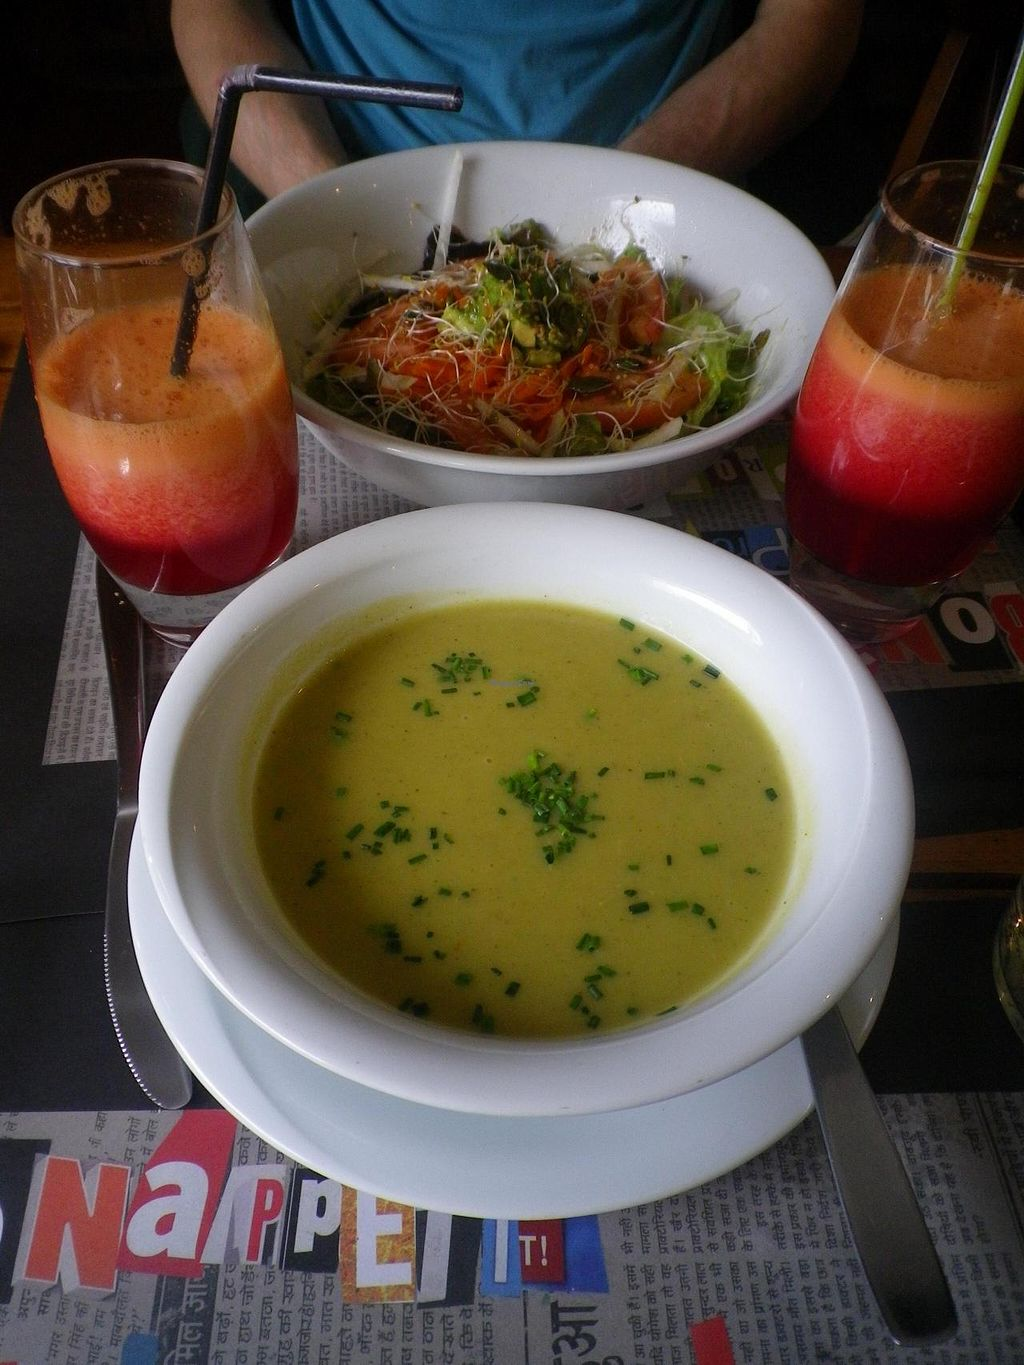 """Photo of Sukha Espai Vegetarian  by <a href=""""/members/profile/Becky%20Louise"""">Becky Louise</a> <br/>Starter of homemade zuccinni soup and a big beautiful salad  <br/> May 18, 2014  - <a href='/contact/abuse/image/38753/70234'>Report</a>"""